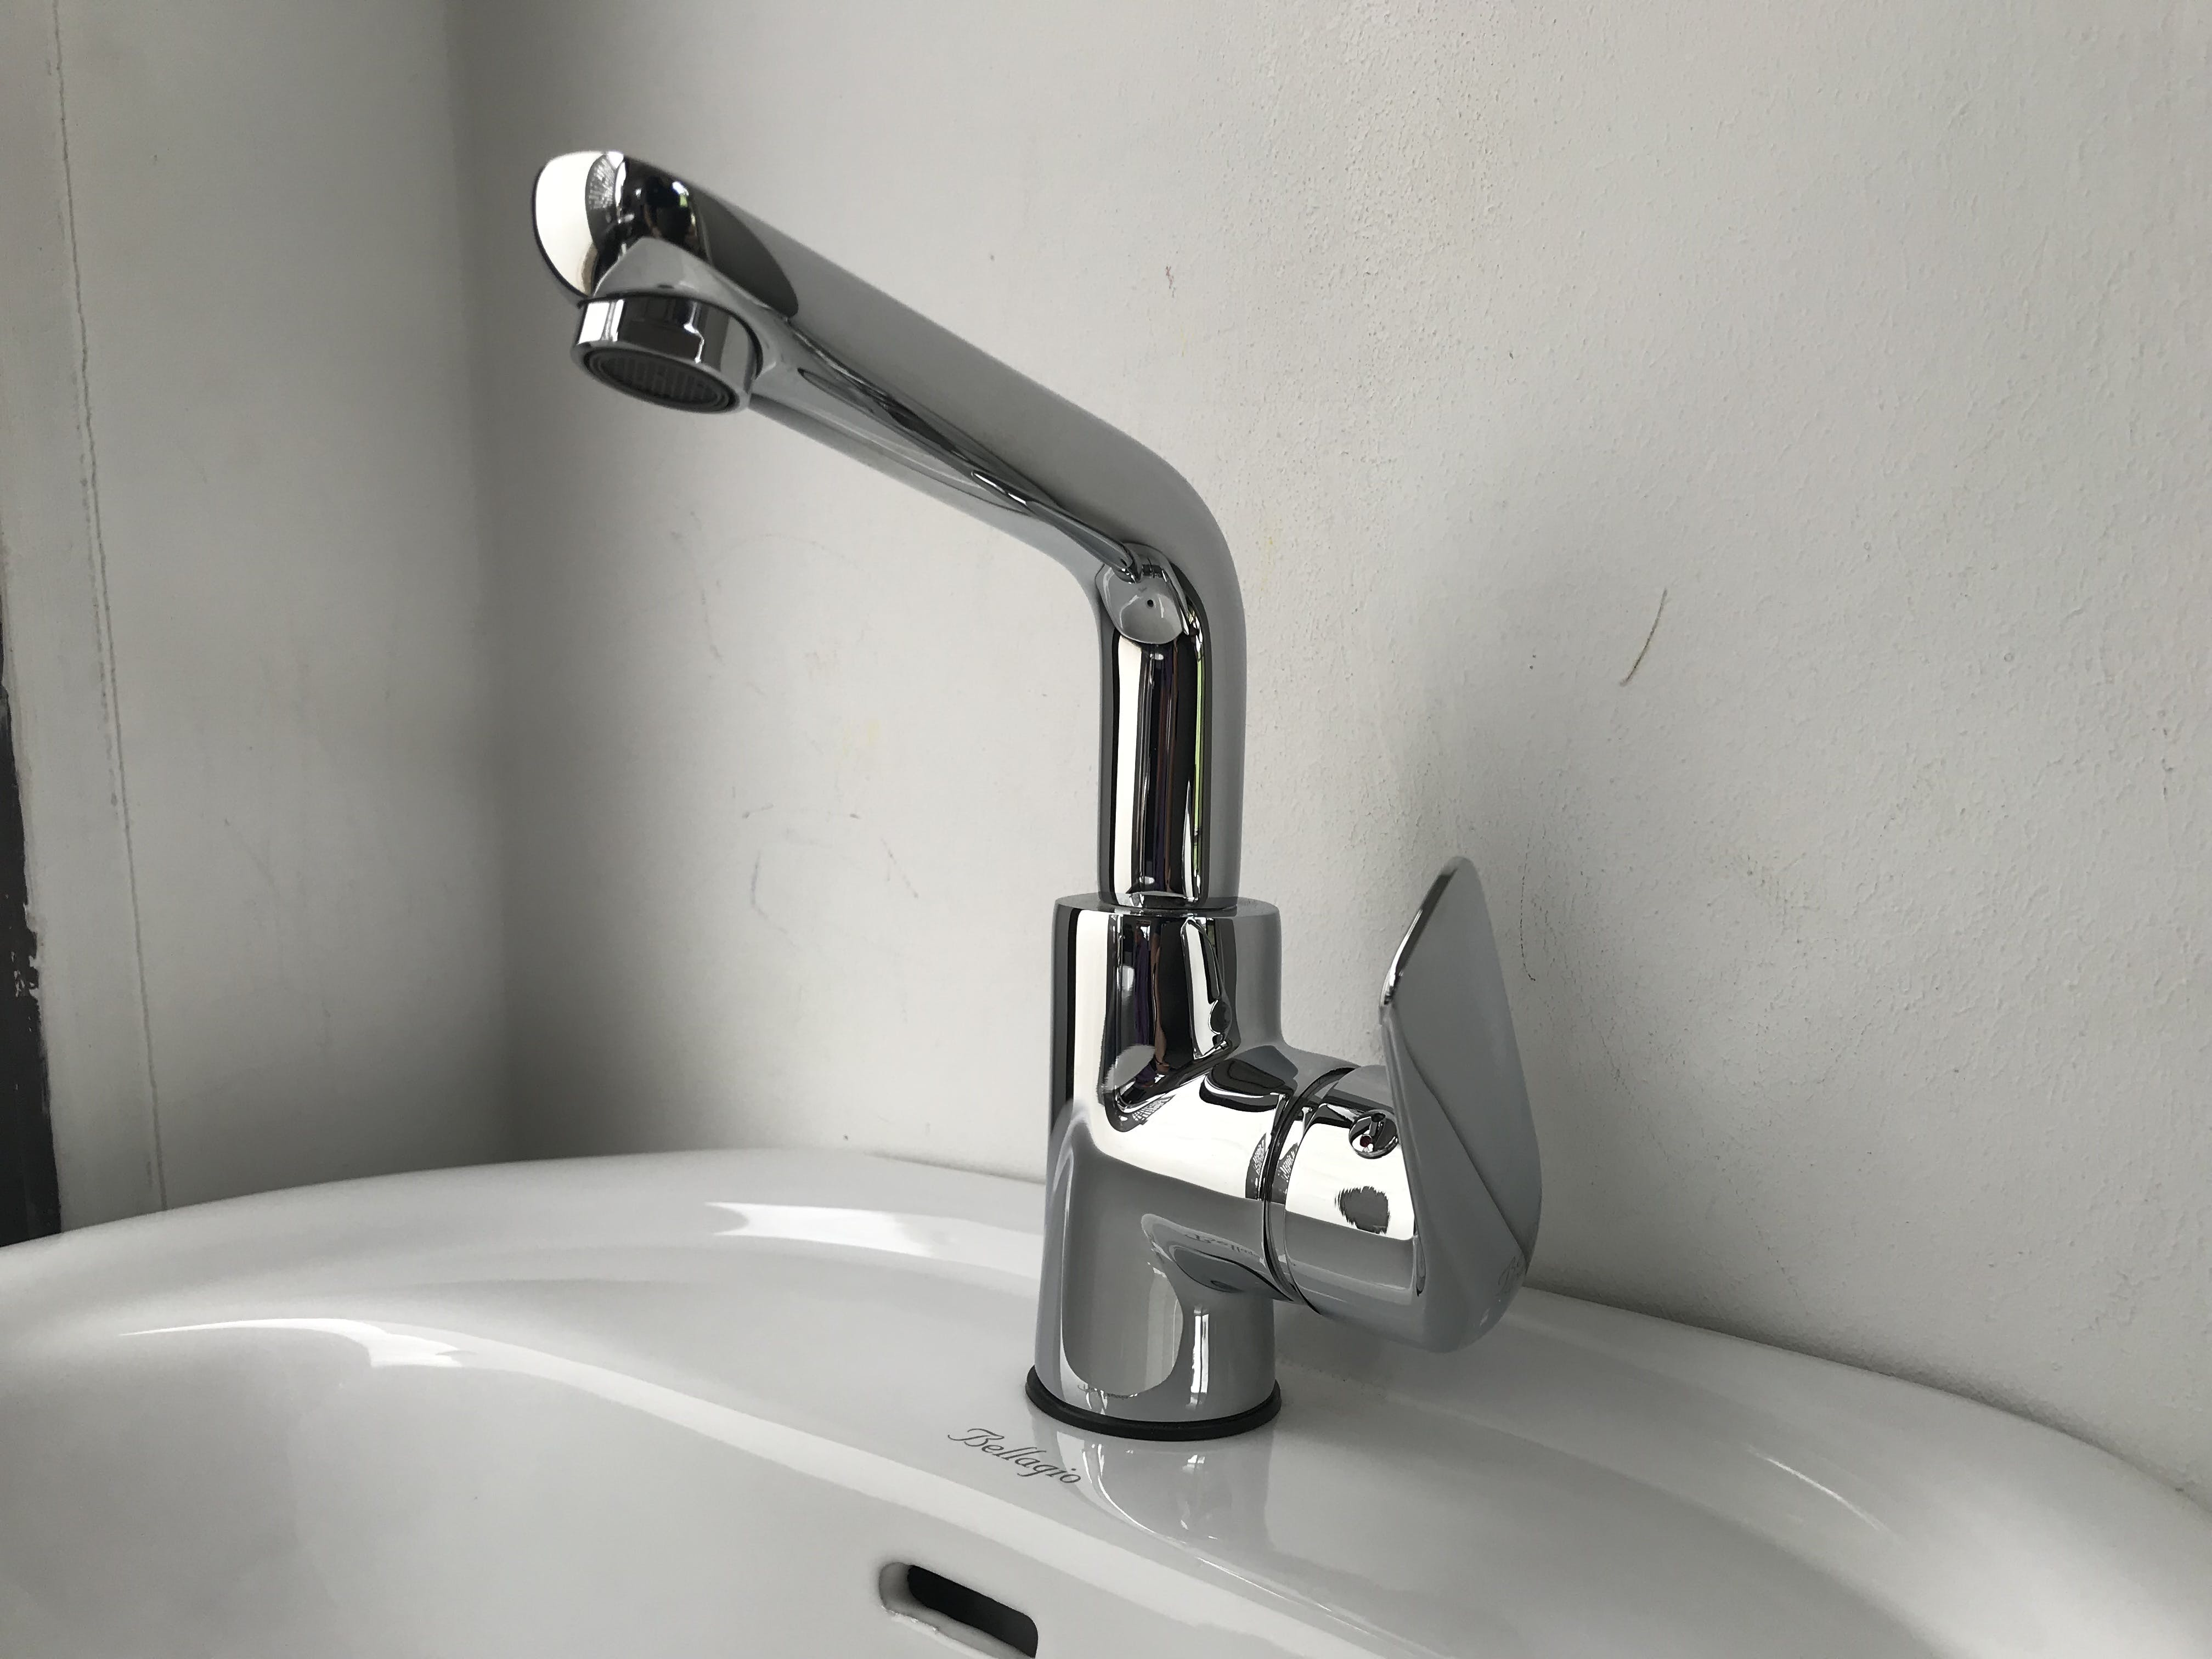 Free stock photo of faucet, tap, watering